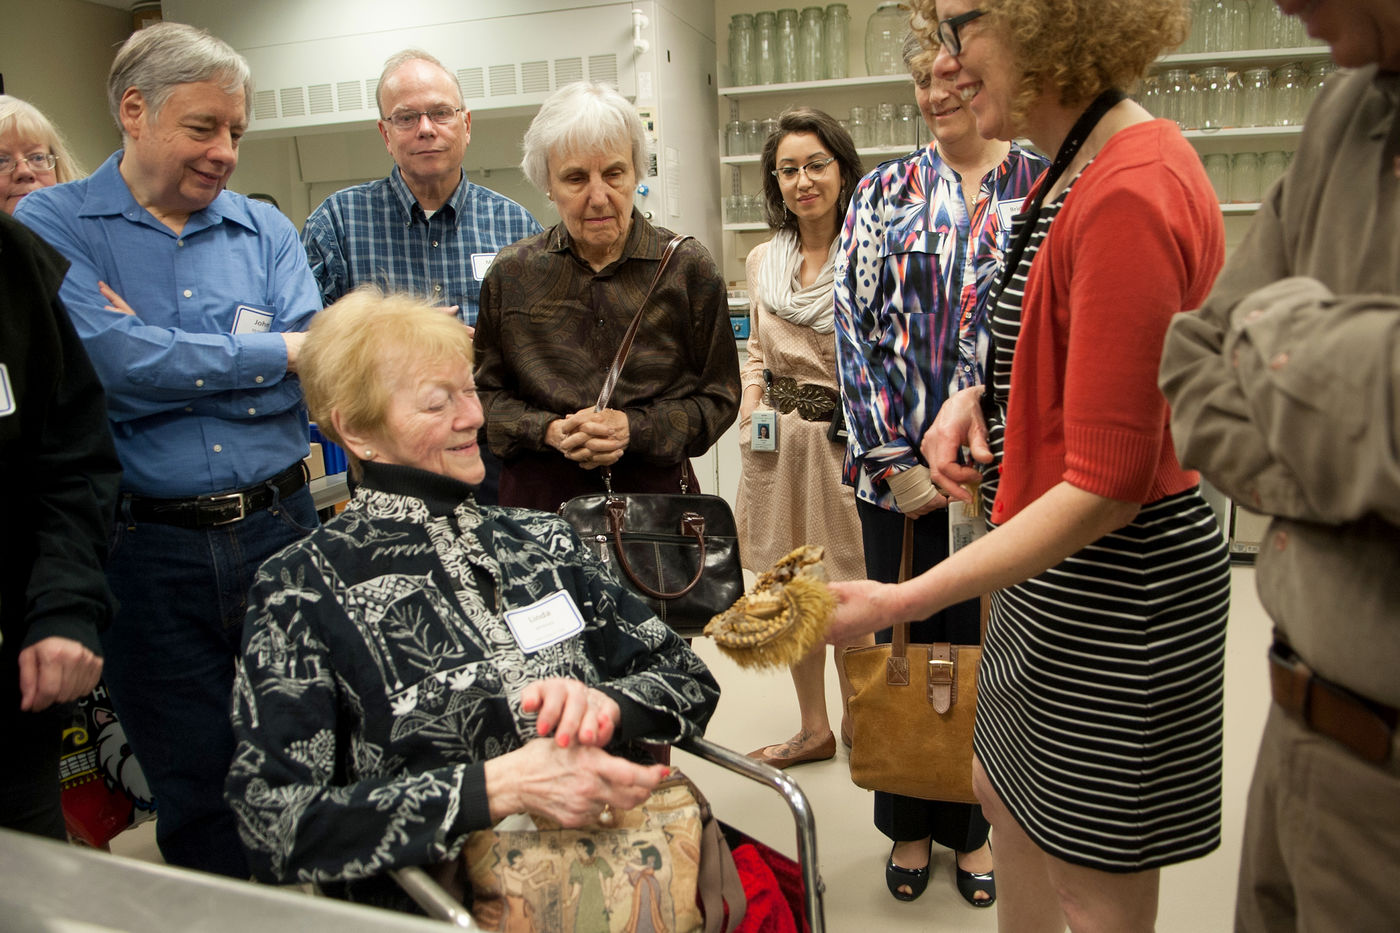 An older woman in a wheelchair smiles as she looks at a specimen held by a staff member. Other adults in the group stand around the pair, looking intently at the specimen. Clear jars are on shelves in the background.